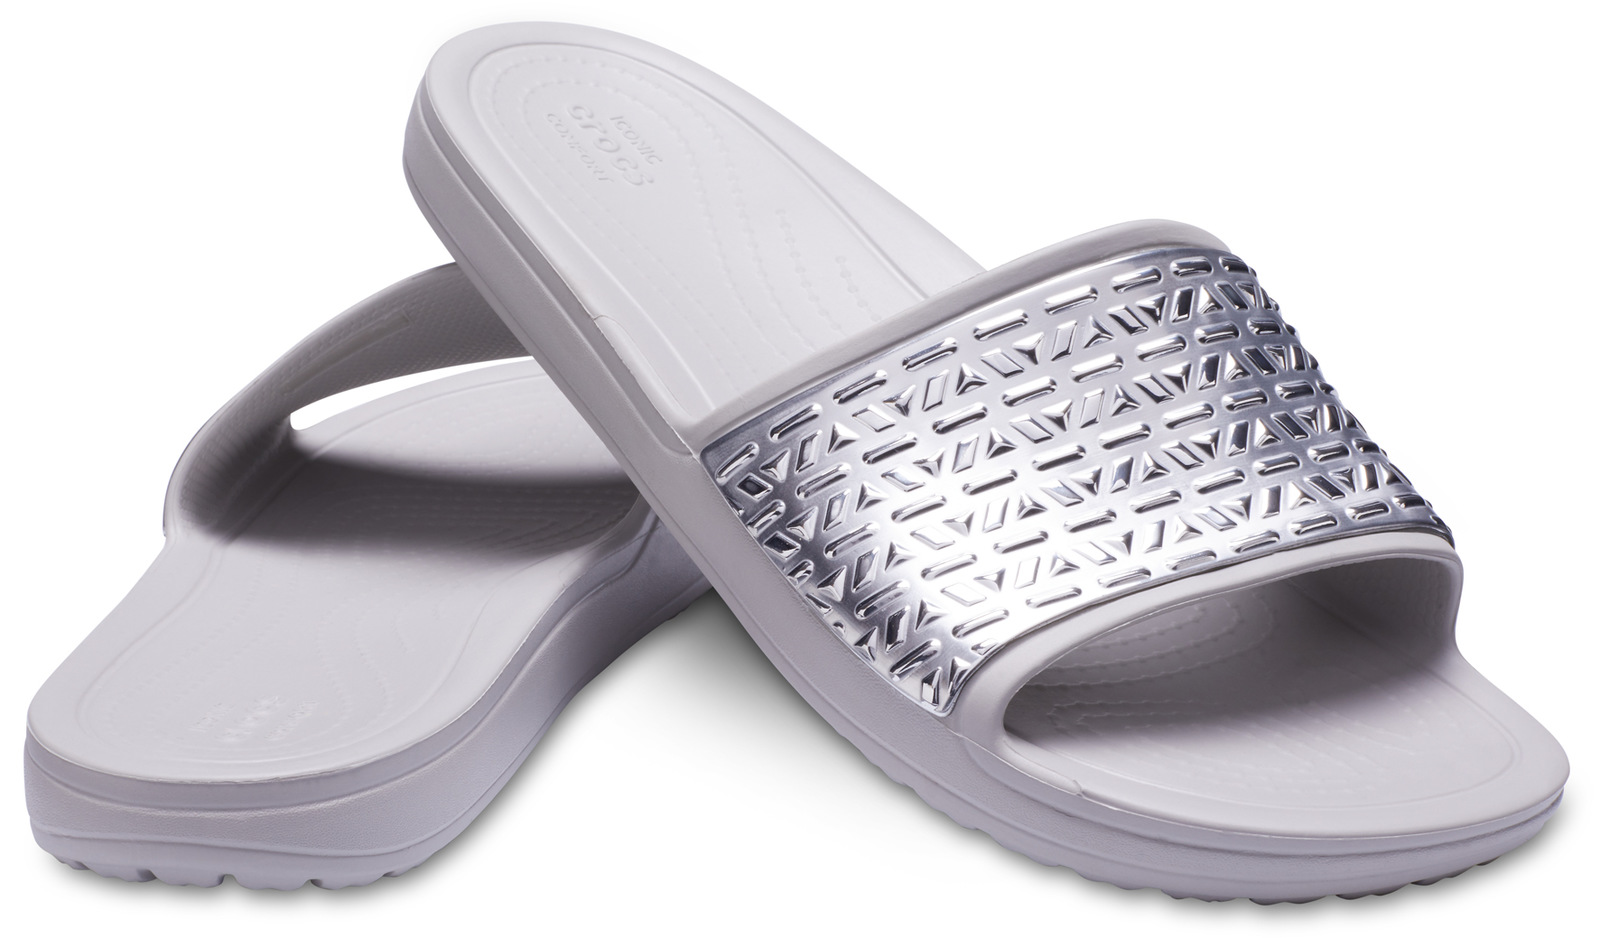 Crocs šedé pantofle Sloane Graphic Etched Slide Pearl White/Silver